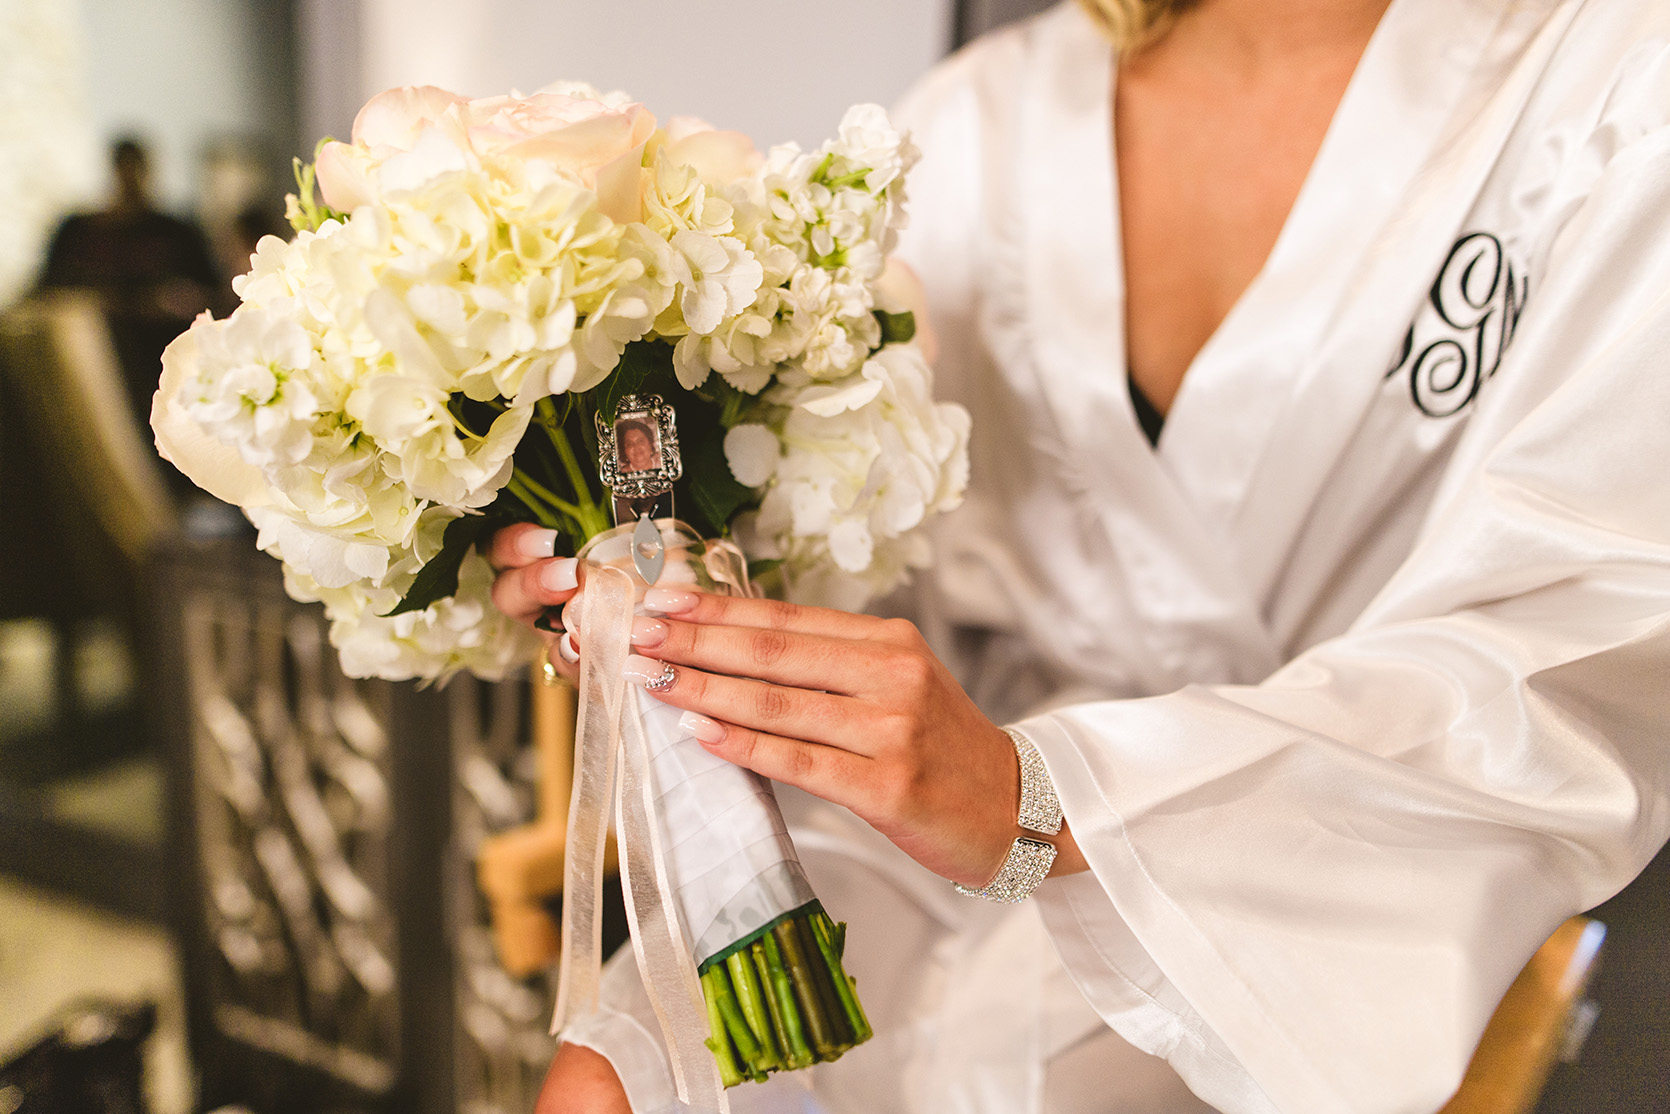 houston wedding, bridal bouquet, white flowers, bride, getting ready